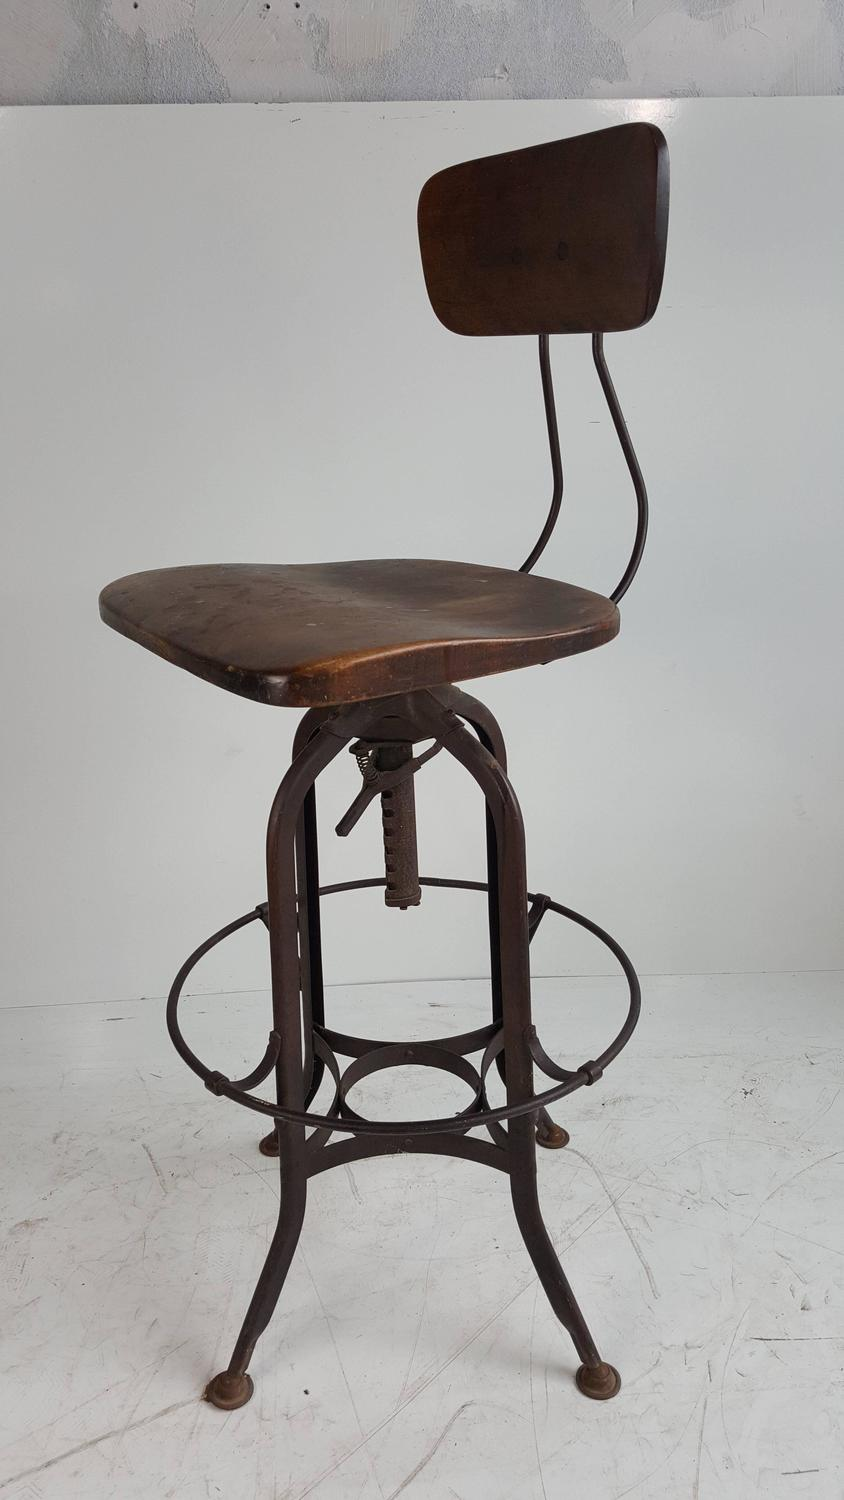 Early th century toledo drafting stool carved wood seat